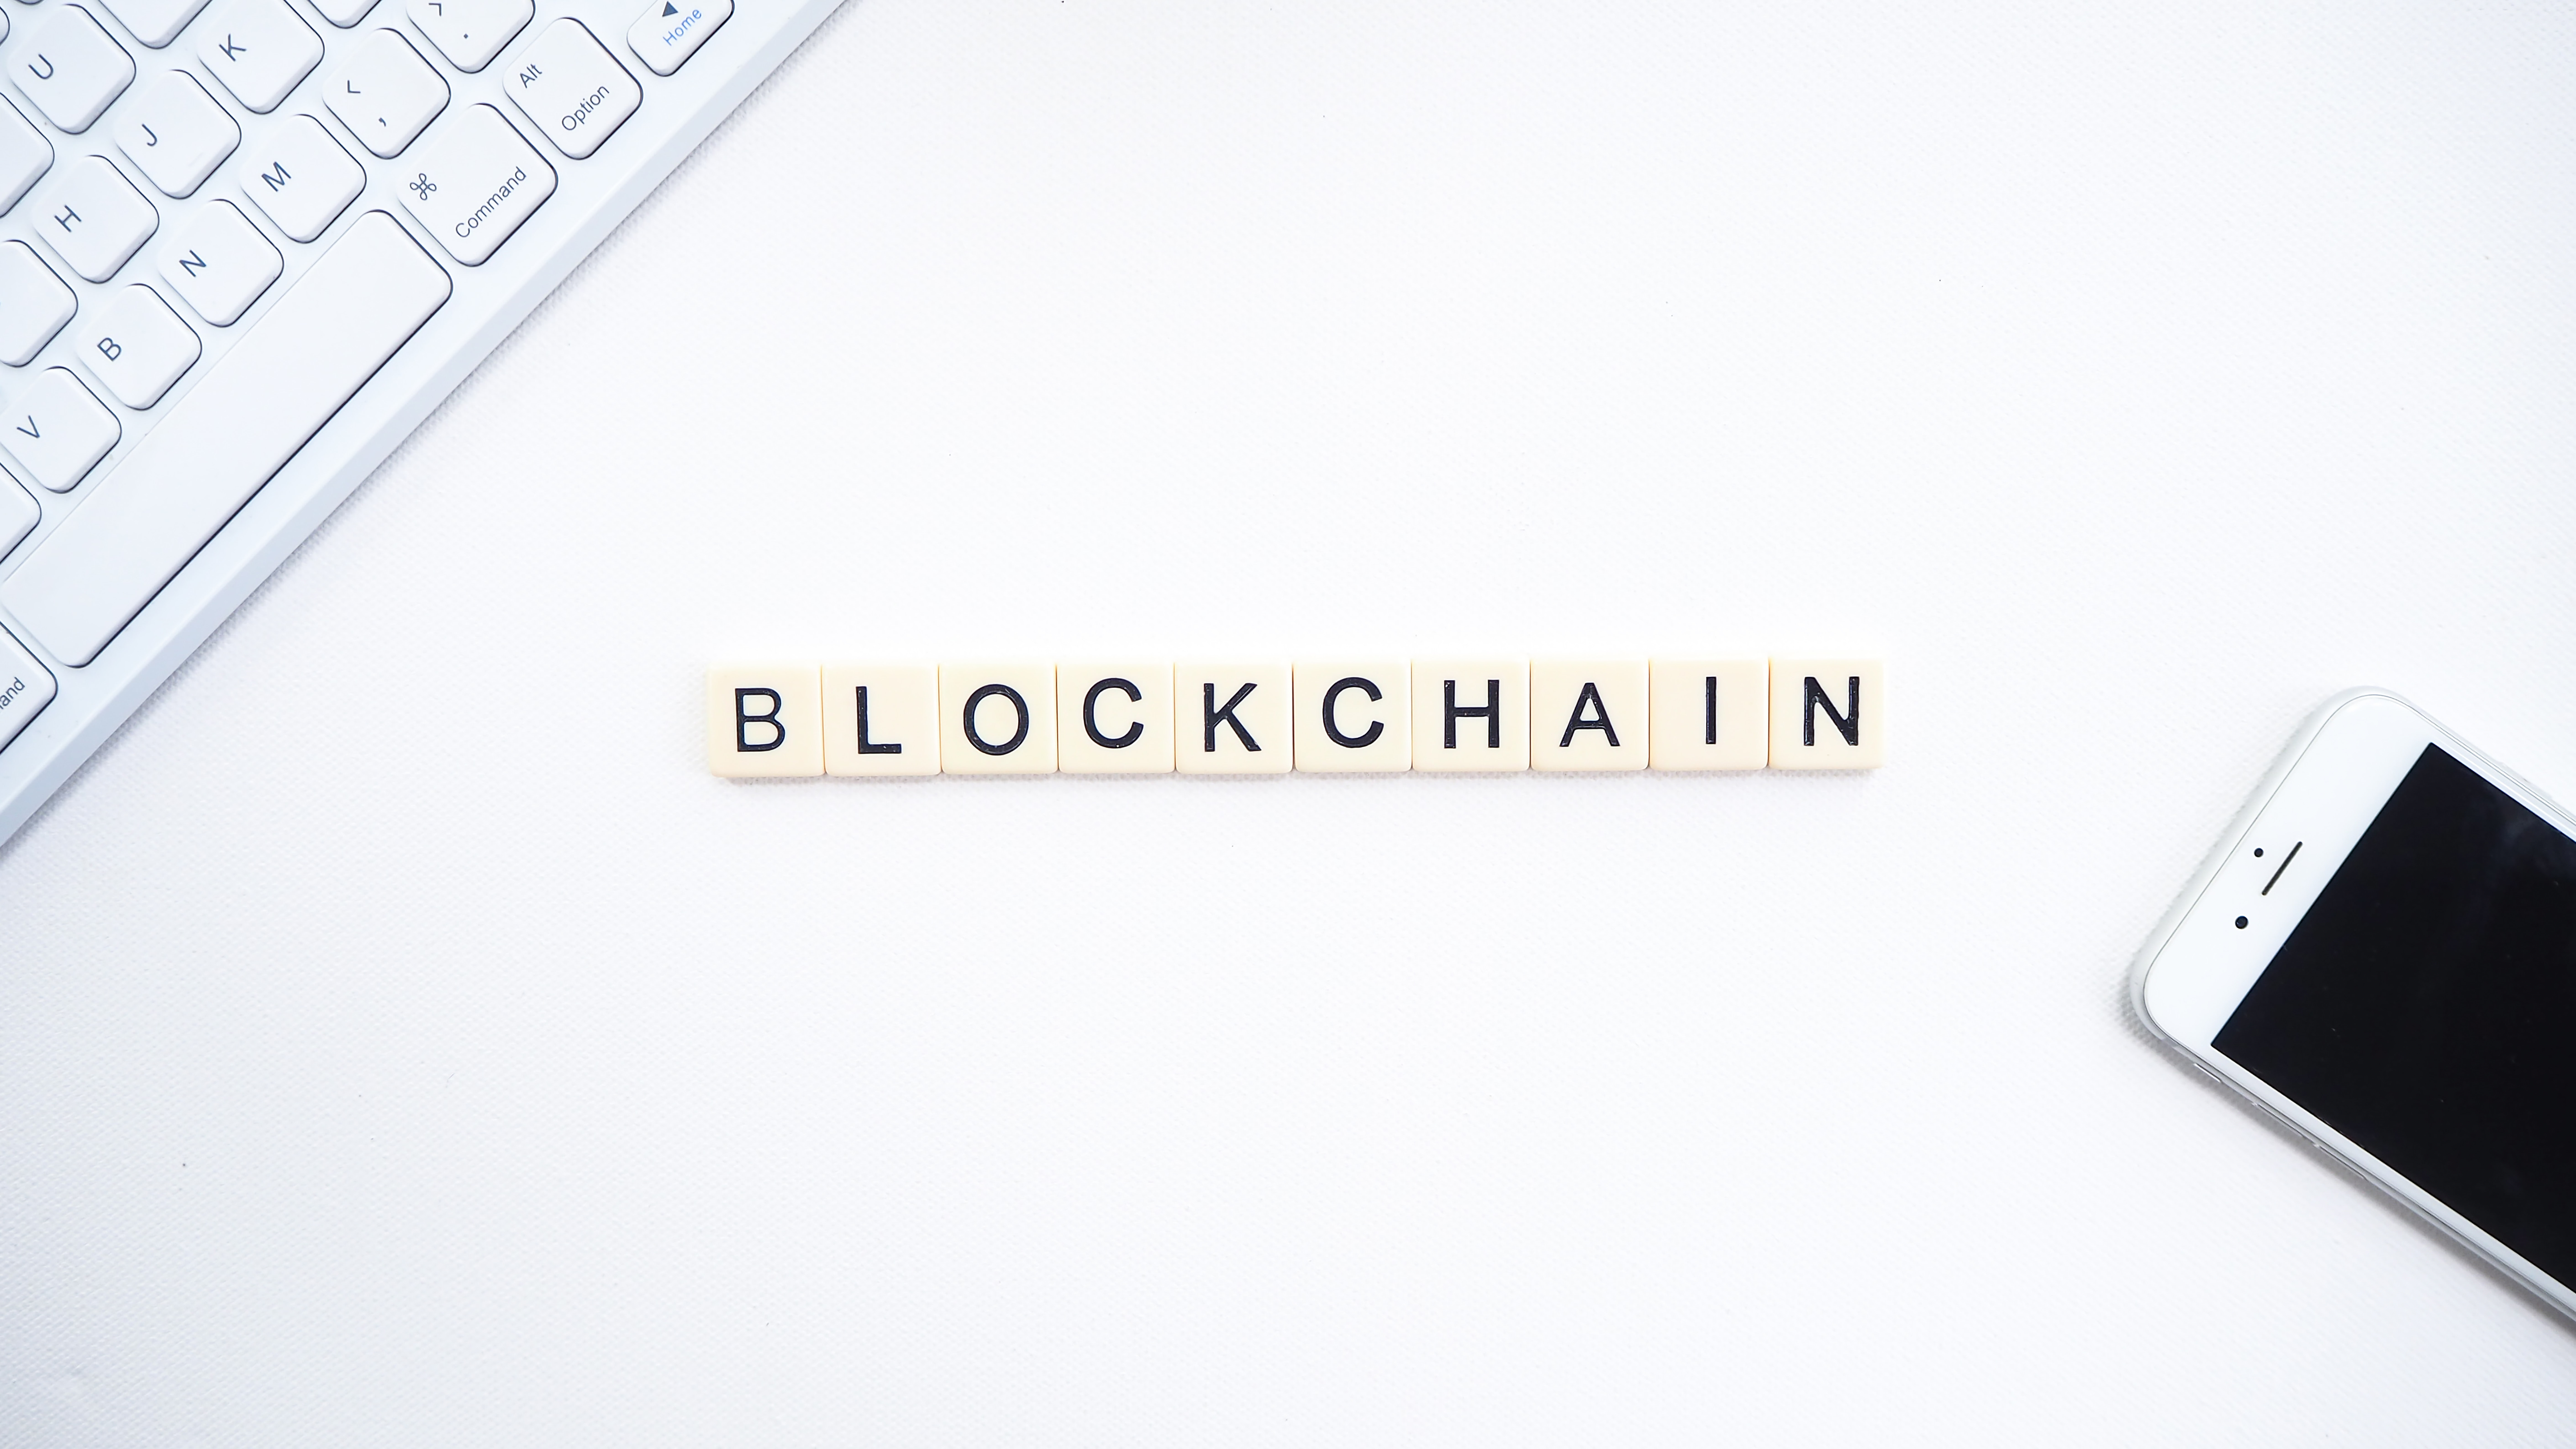 Promoting Supply Chain Efficiency Through Smart Contracts